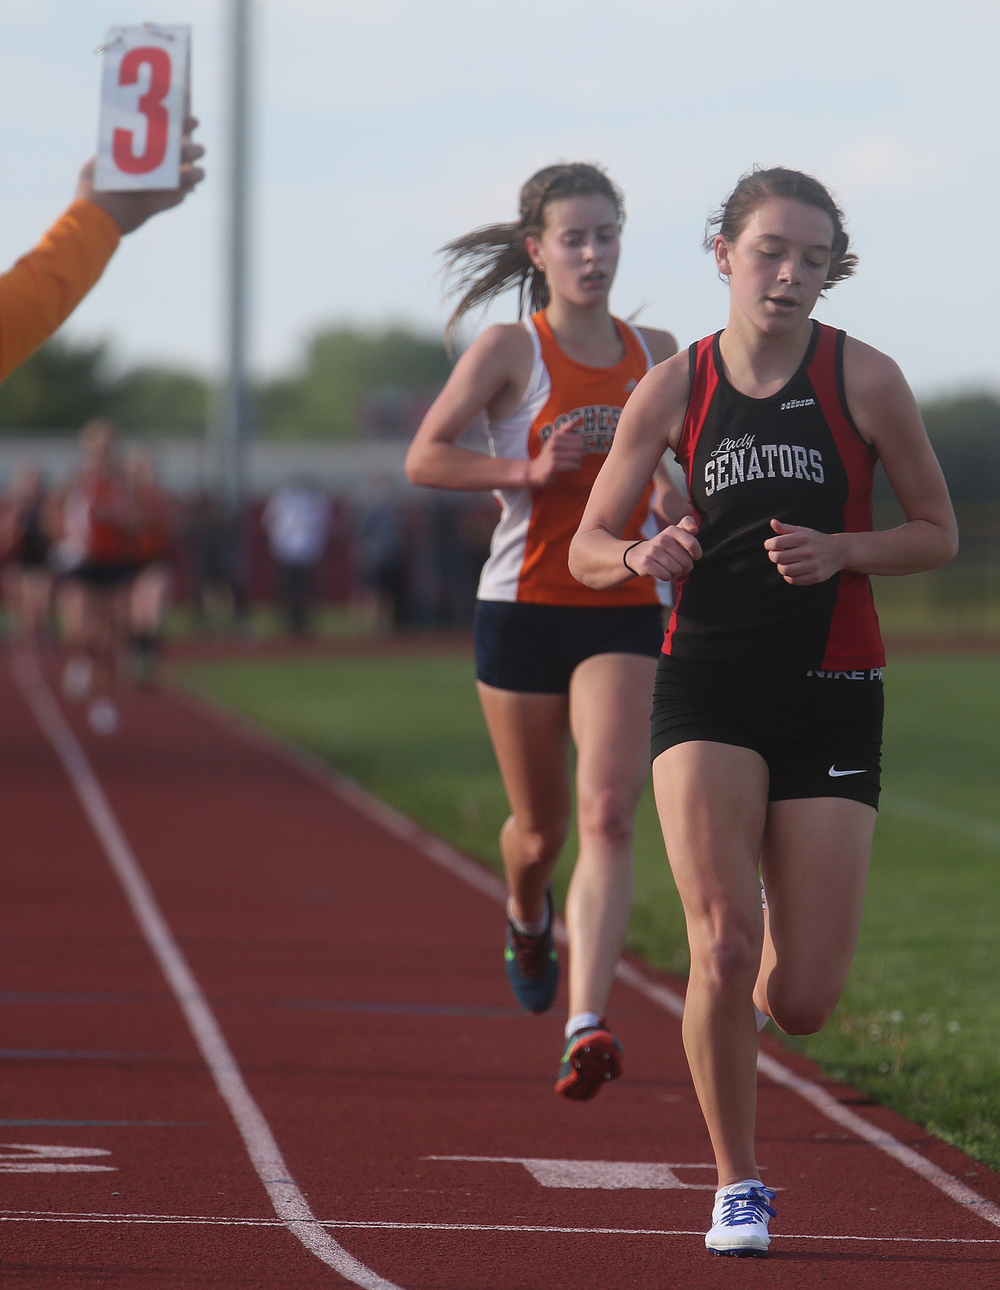 In the third lap of the 3200 meter run, Springfield High School's Natalie Motor gets past Rochester's Madeline Campbell en route to winning the event in 11:45.67 minutes. David Spencer/The State Journal-Register